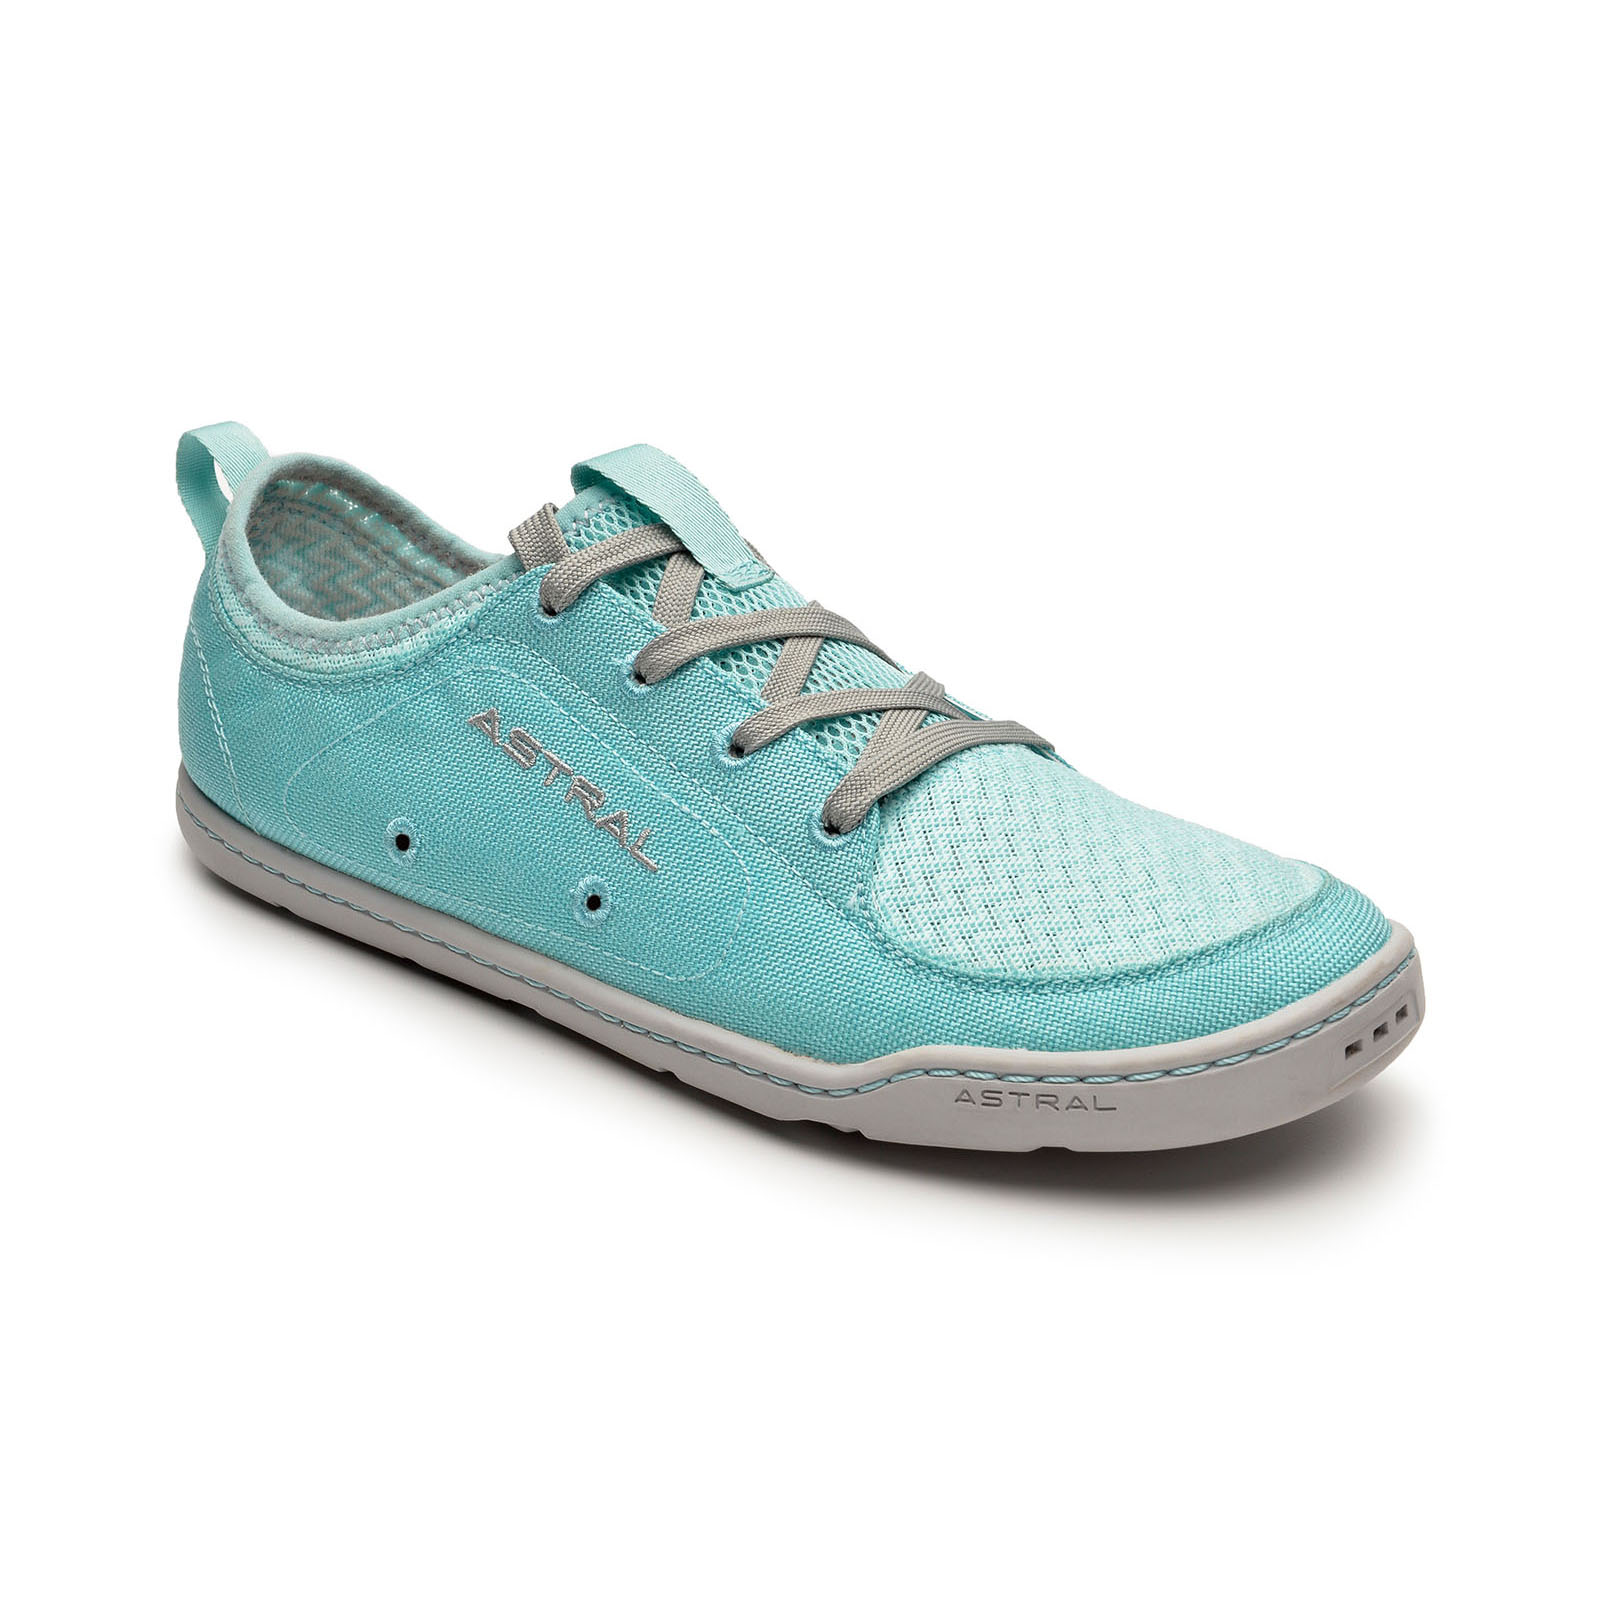 Astral Loyak Women's Water Shoe (LYWTG)